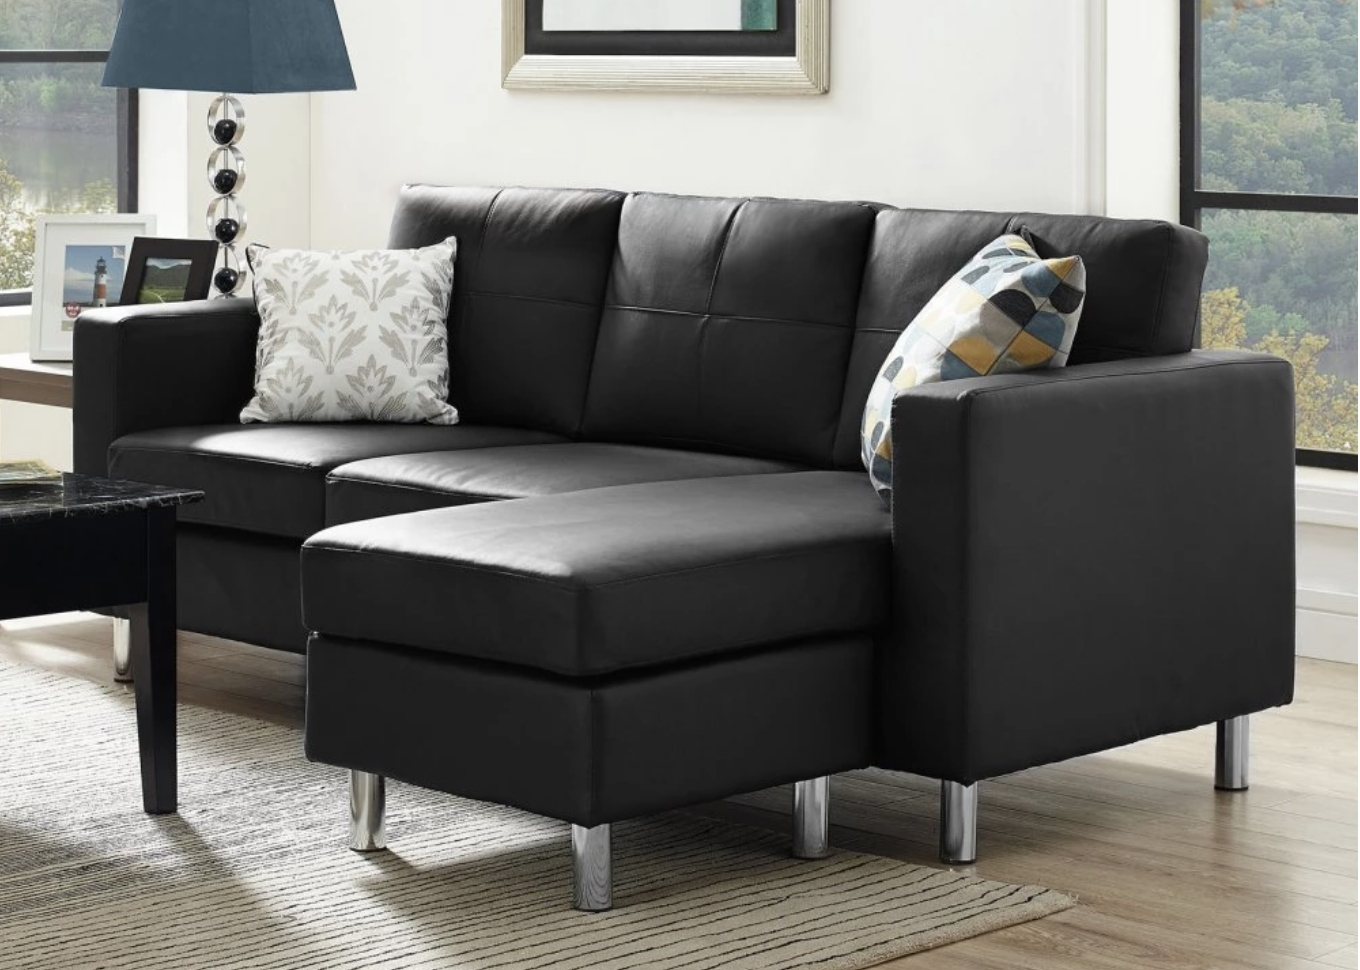 Fashionable Sectional Sofas For Small Living Rooms Inside 75 Modern Sectional Sofas For Small Spaces (2018) (View 17 of 20)